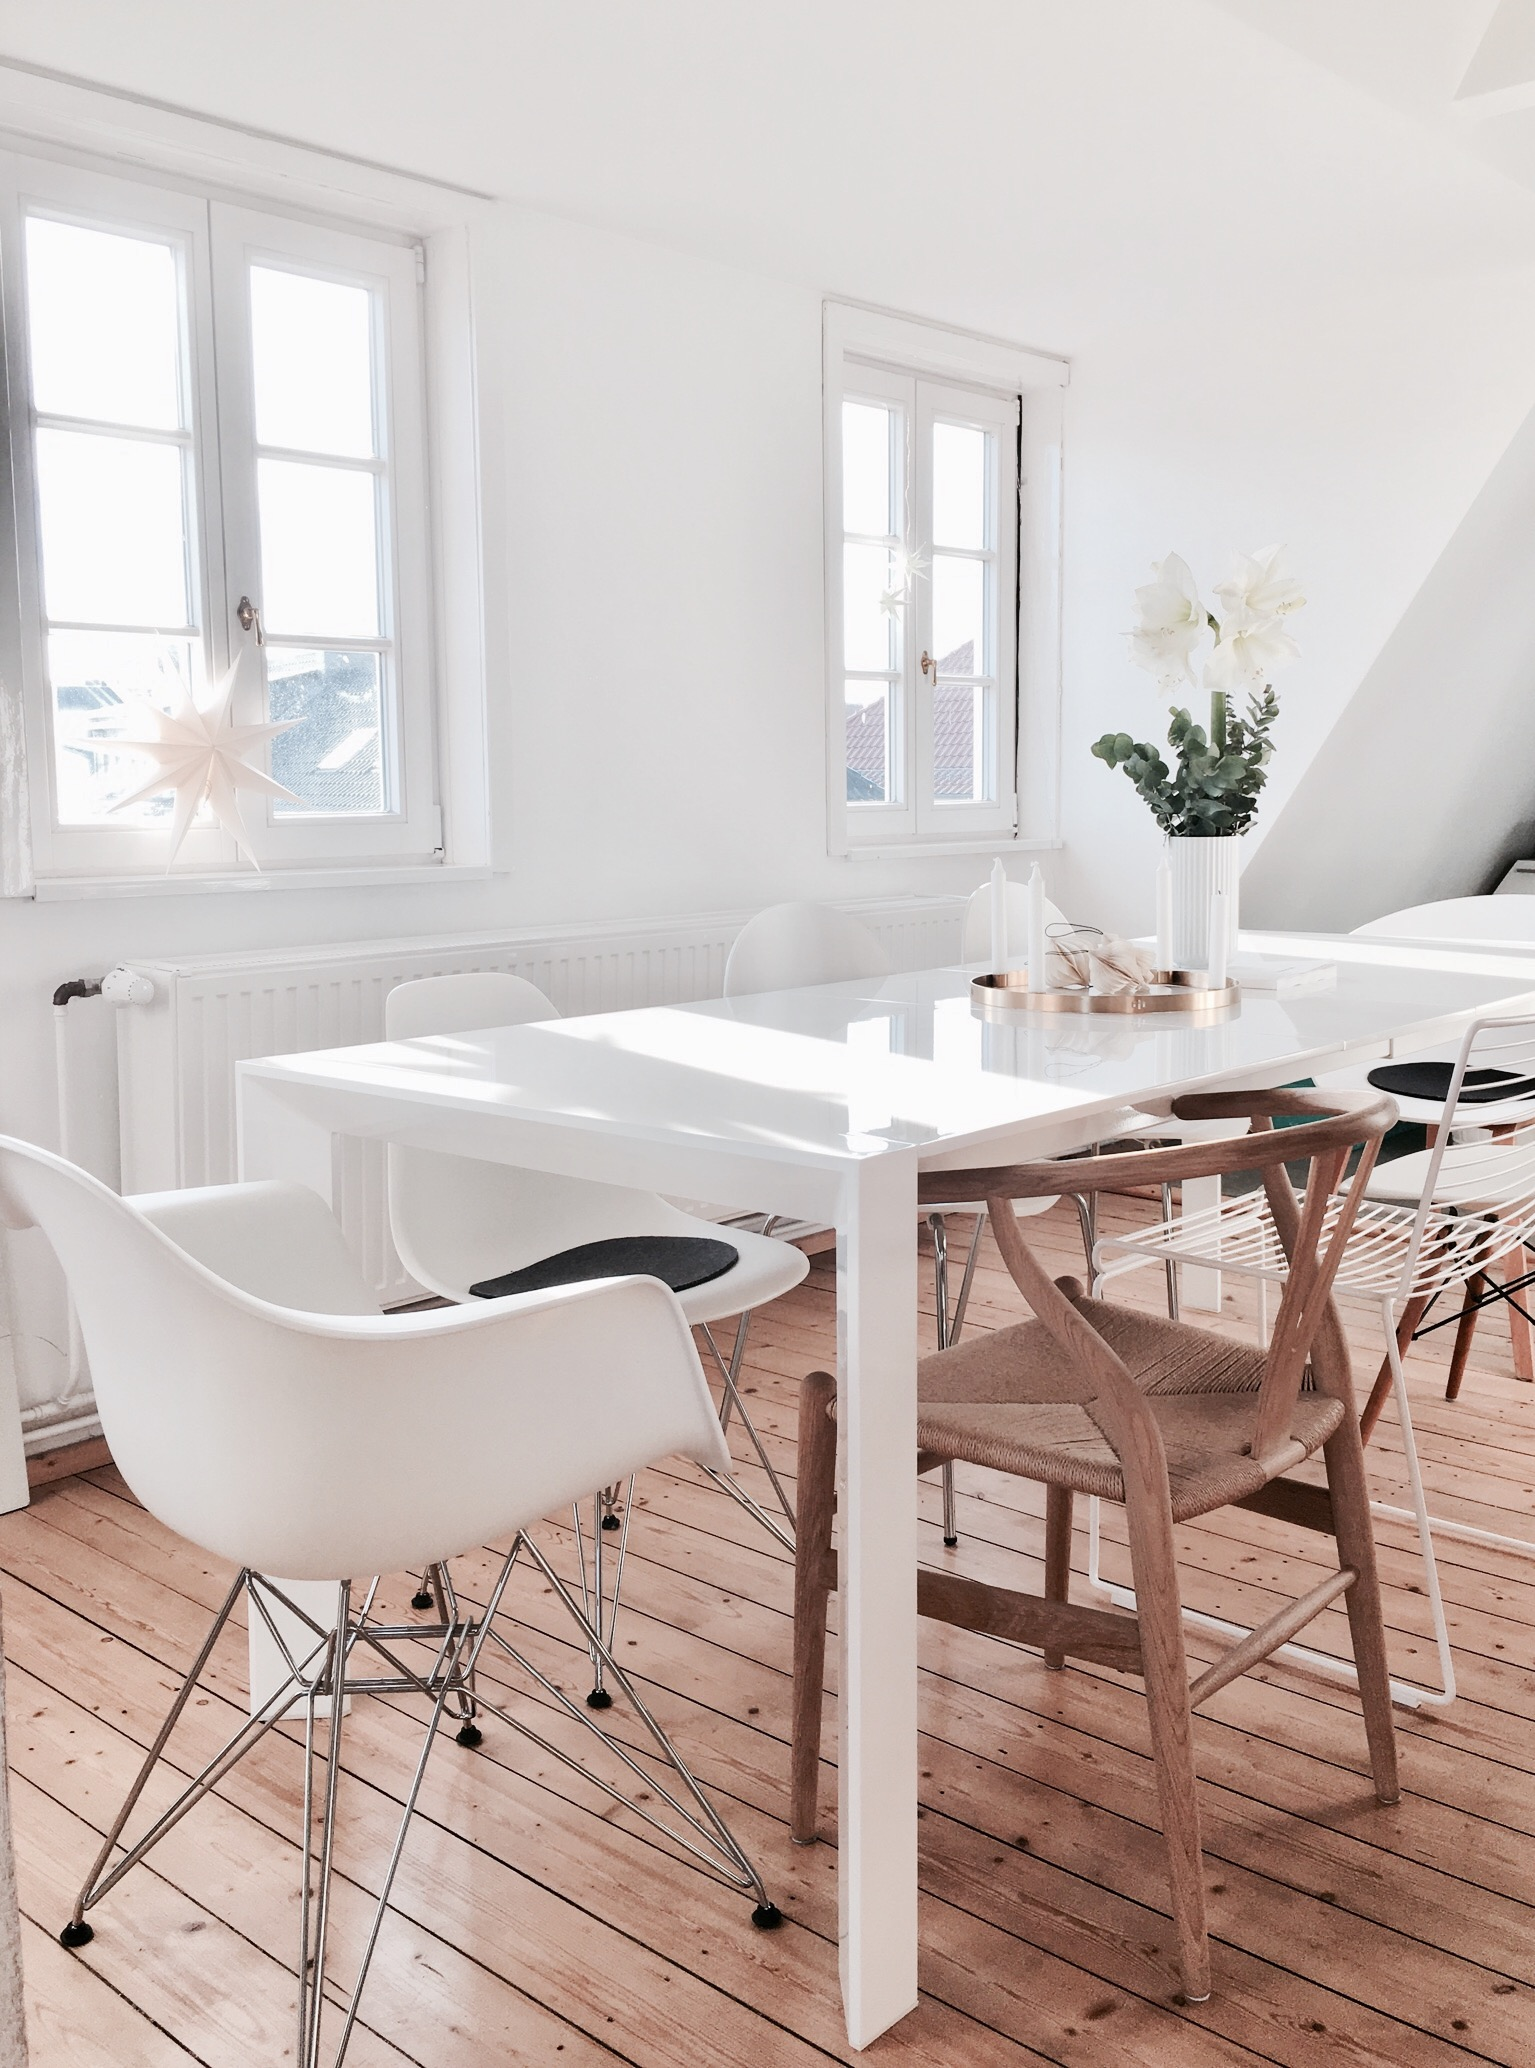 Tour a Hygge Minimalist Attic Apartment in Hannover, Germany